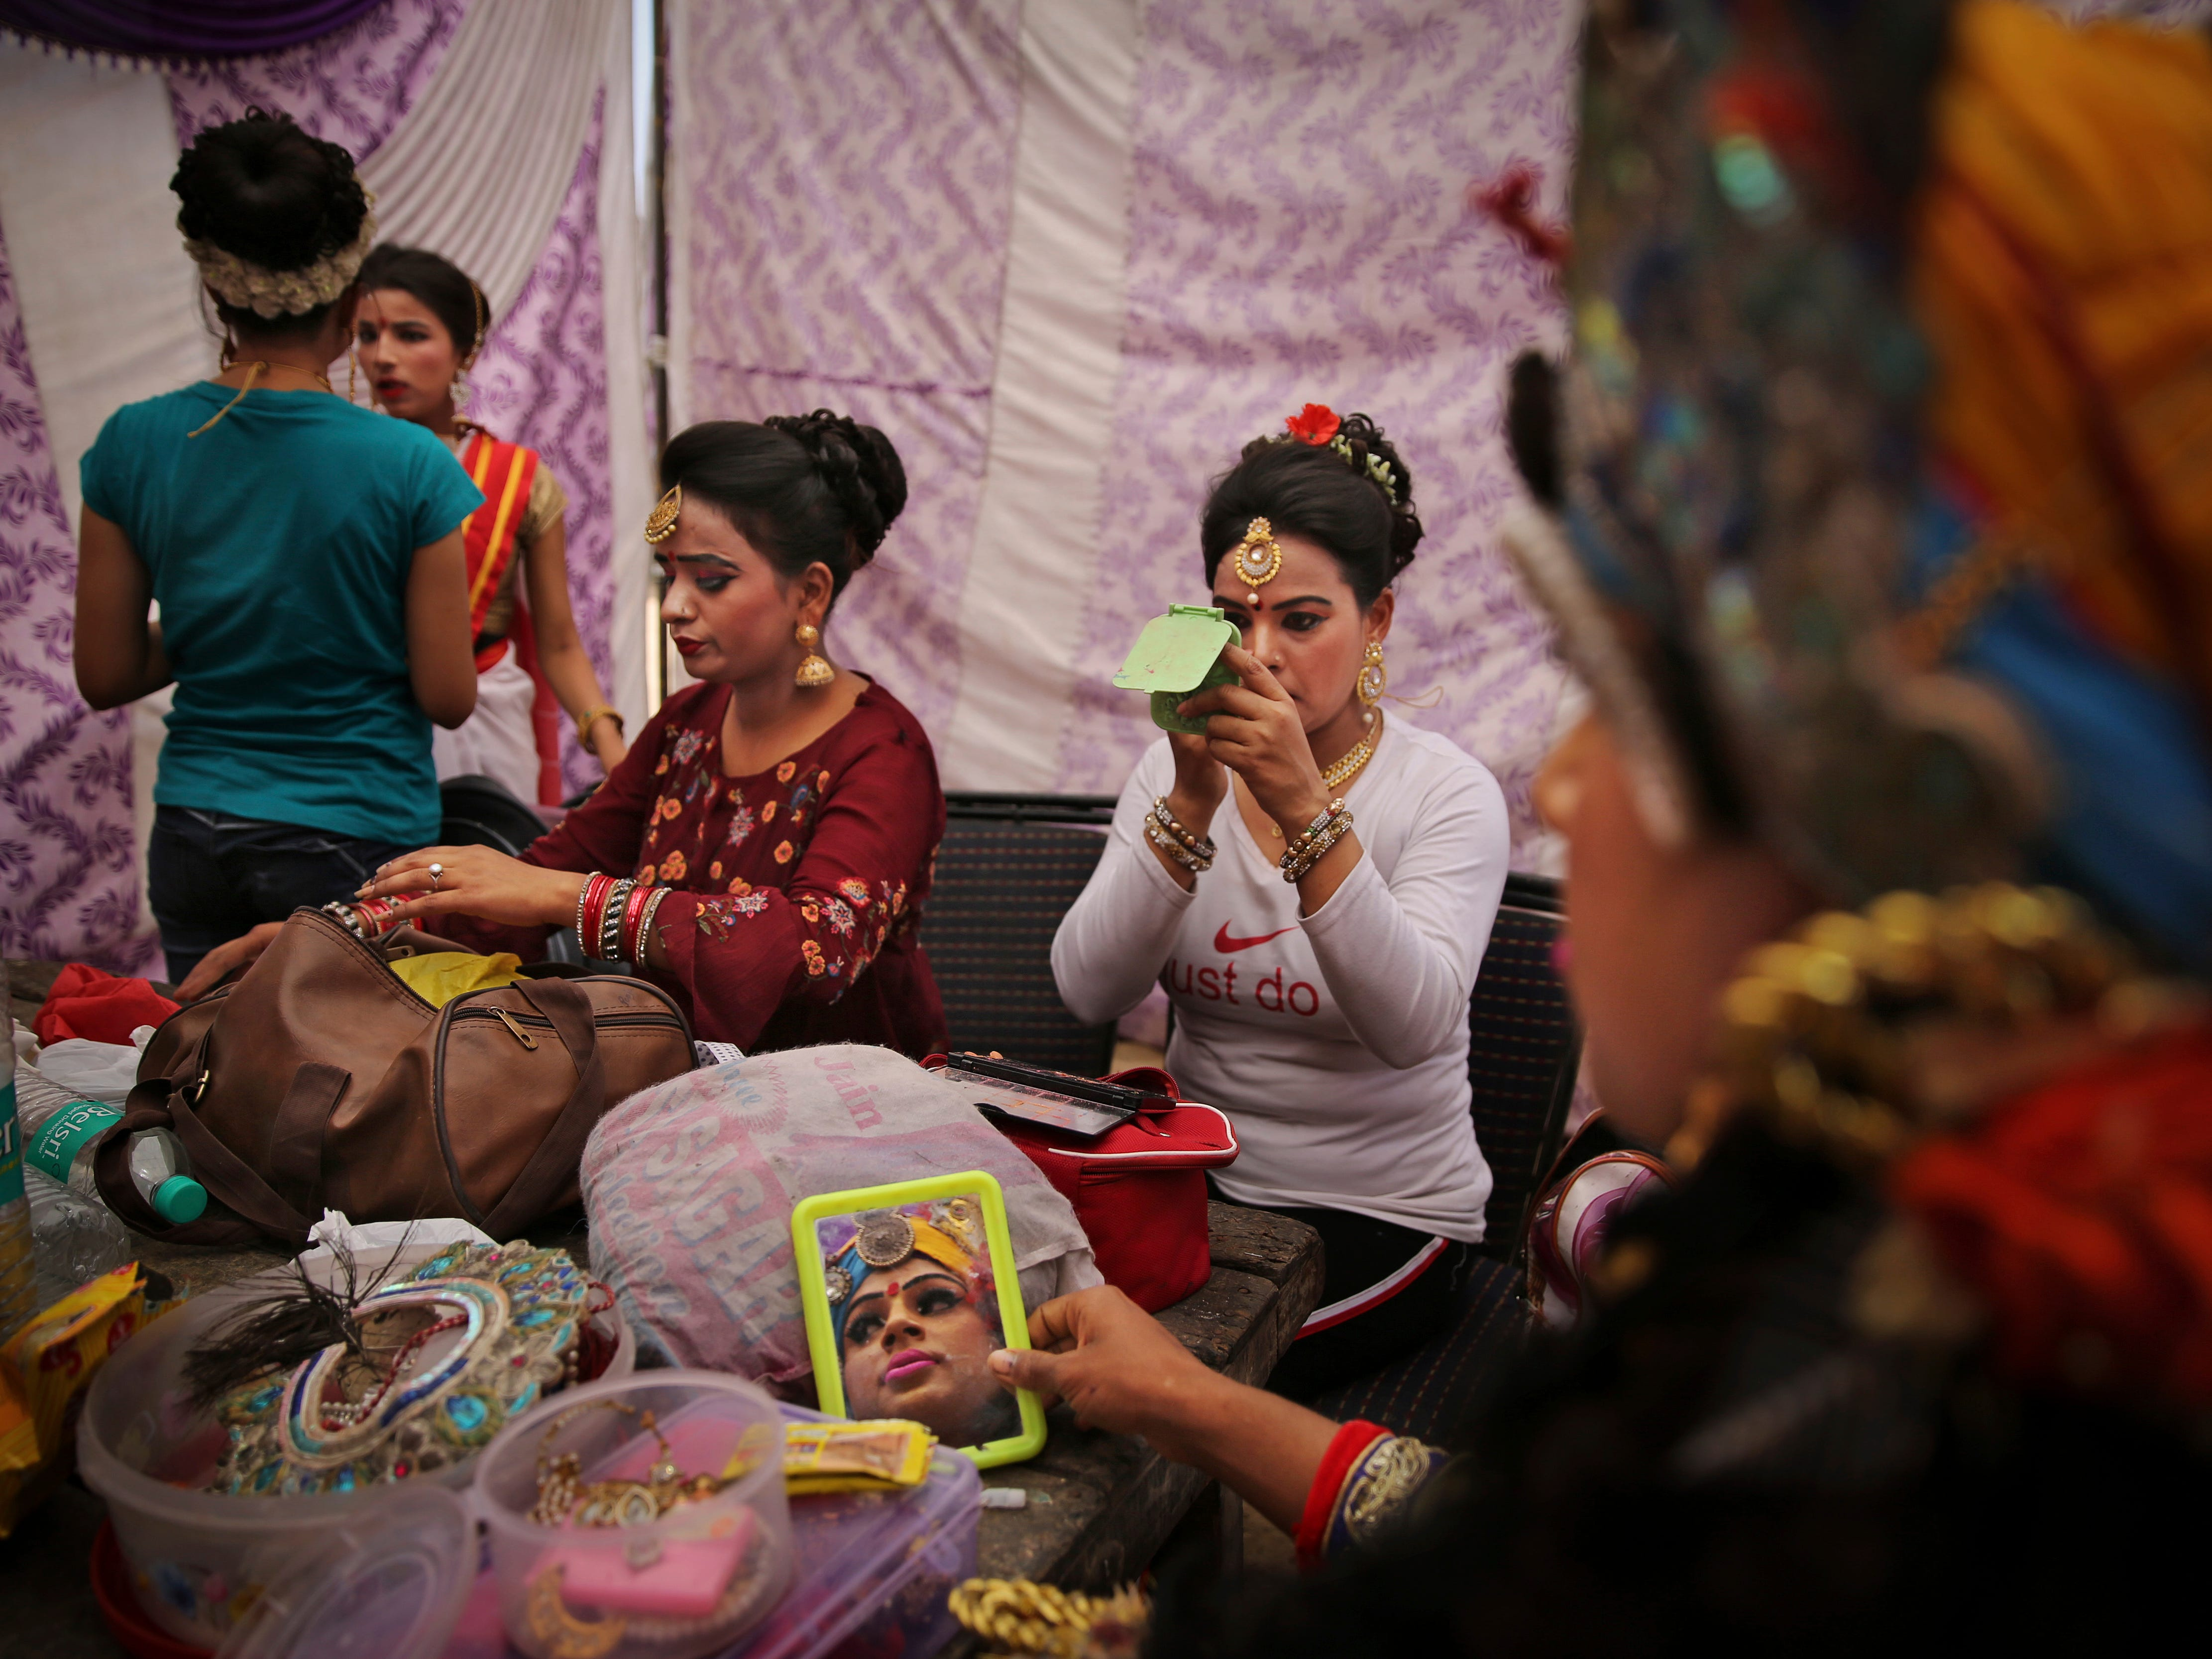 Indian artists prepare backstage for a religious procession on Ram Navami, a major Hindu festival celebrating the birth of the Hindu god Rama, in New Delhi, India, Friday, April 12, 2019. Tens of thousands of devotees attend street processions displaying Rama's life story in colorful tableaux, including statues of infant Rama in a cradle.